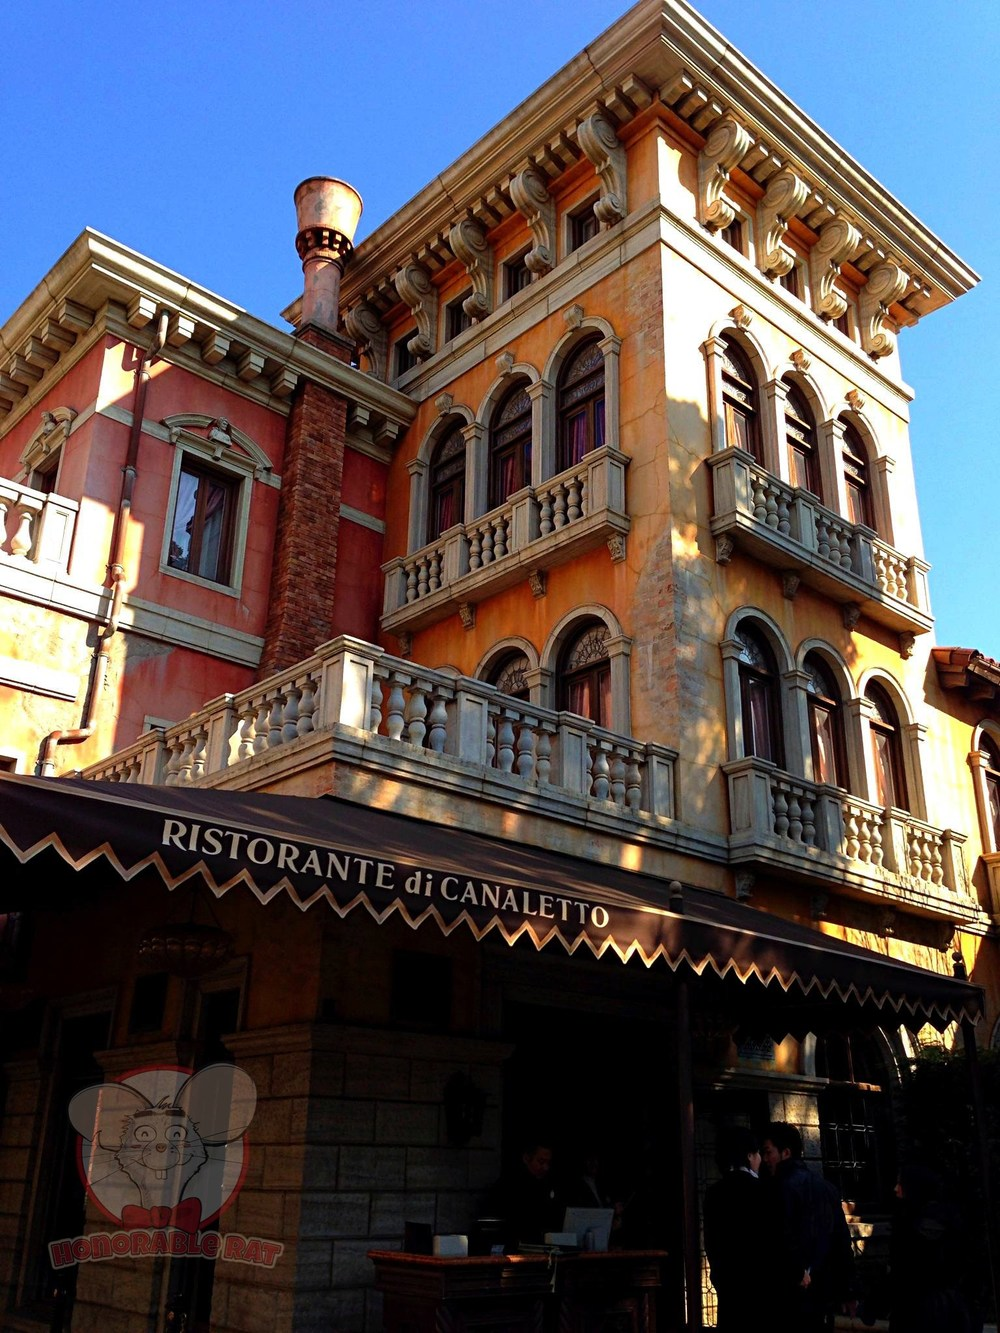 One of the restaurants in Tokyo Disneysea that caters to those with allergies